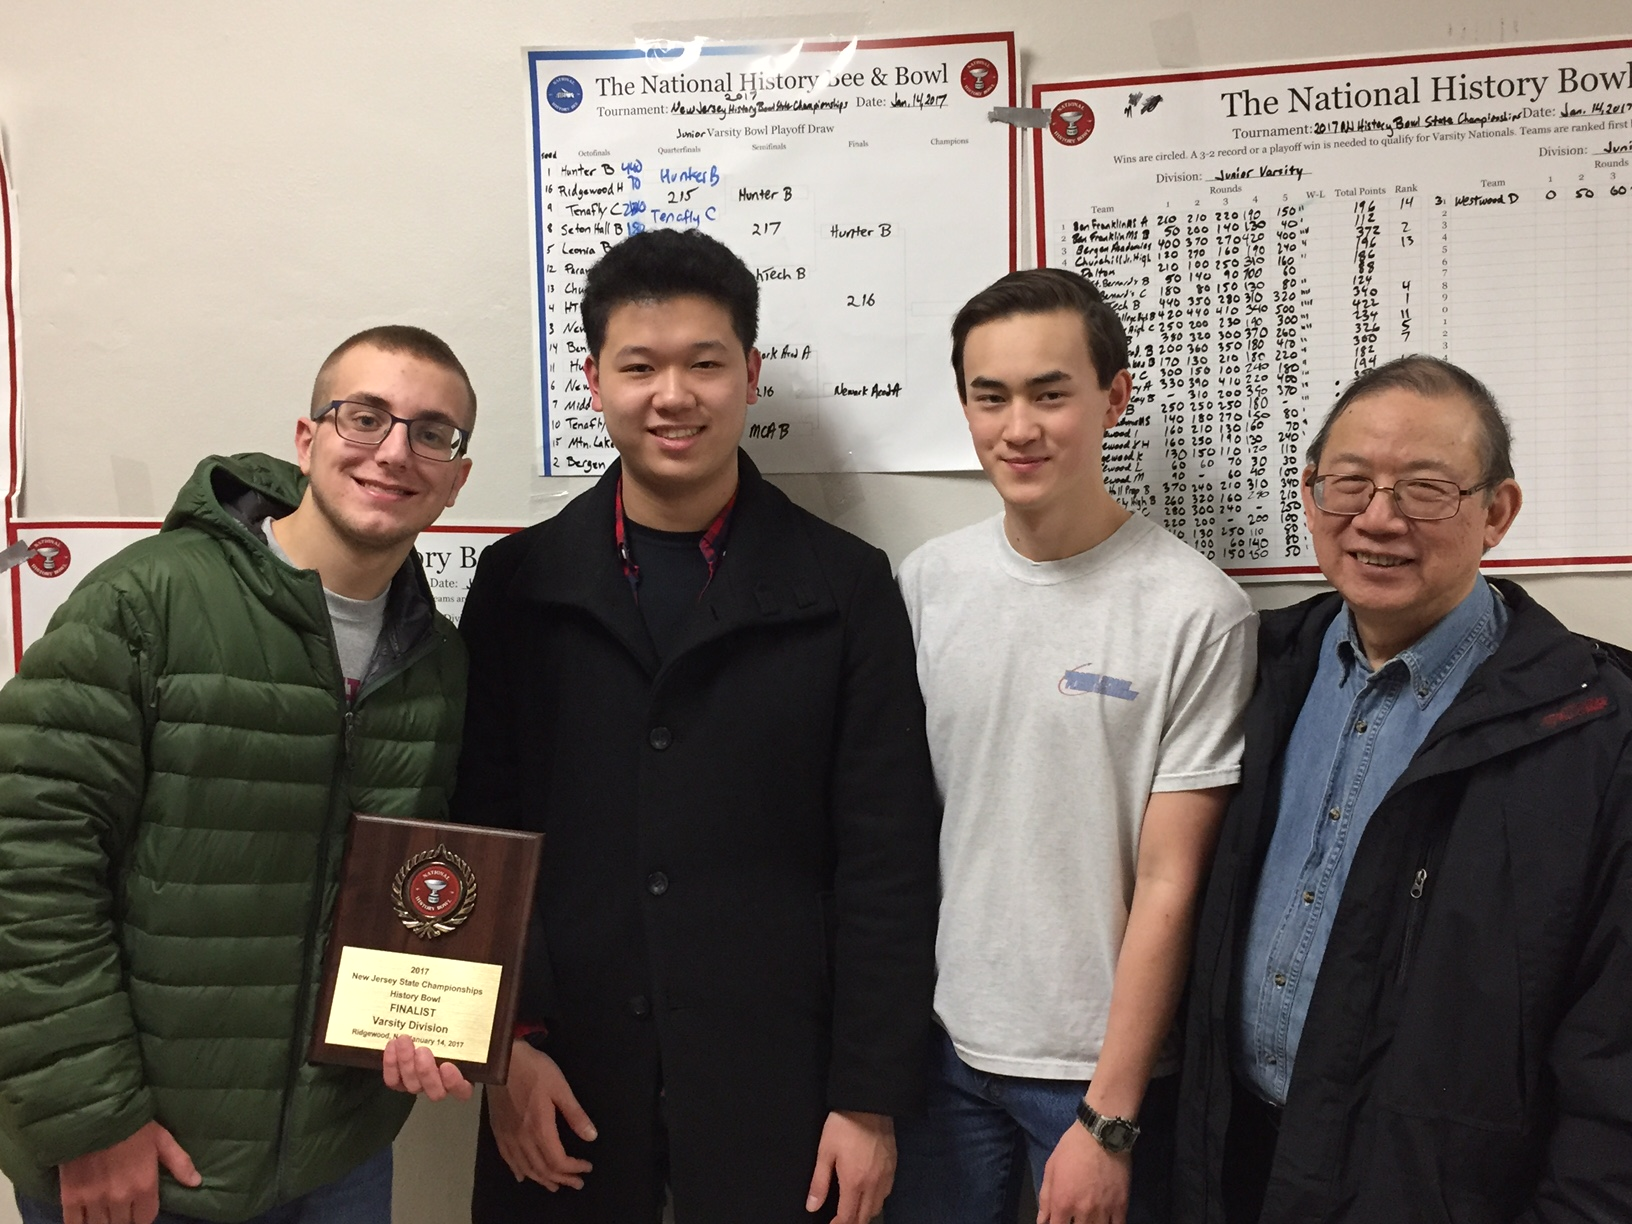 From Left to right: Darren Petrosino, Samuel Kao, Karl Roush, and Dr. Eng.   Photo by David Roush